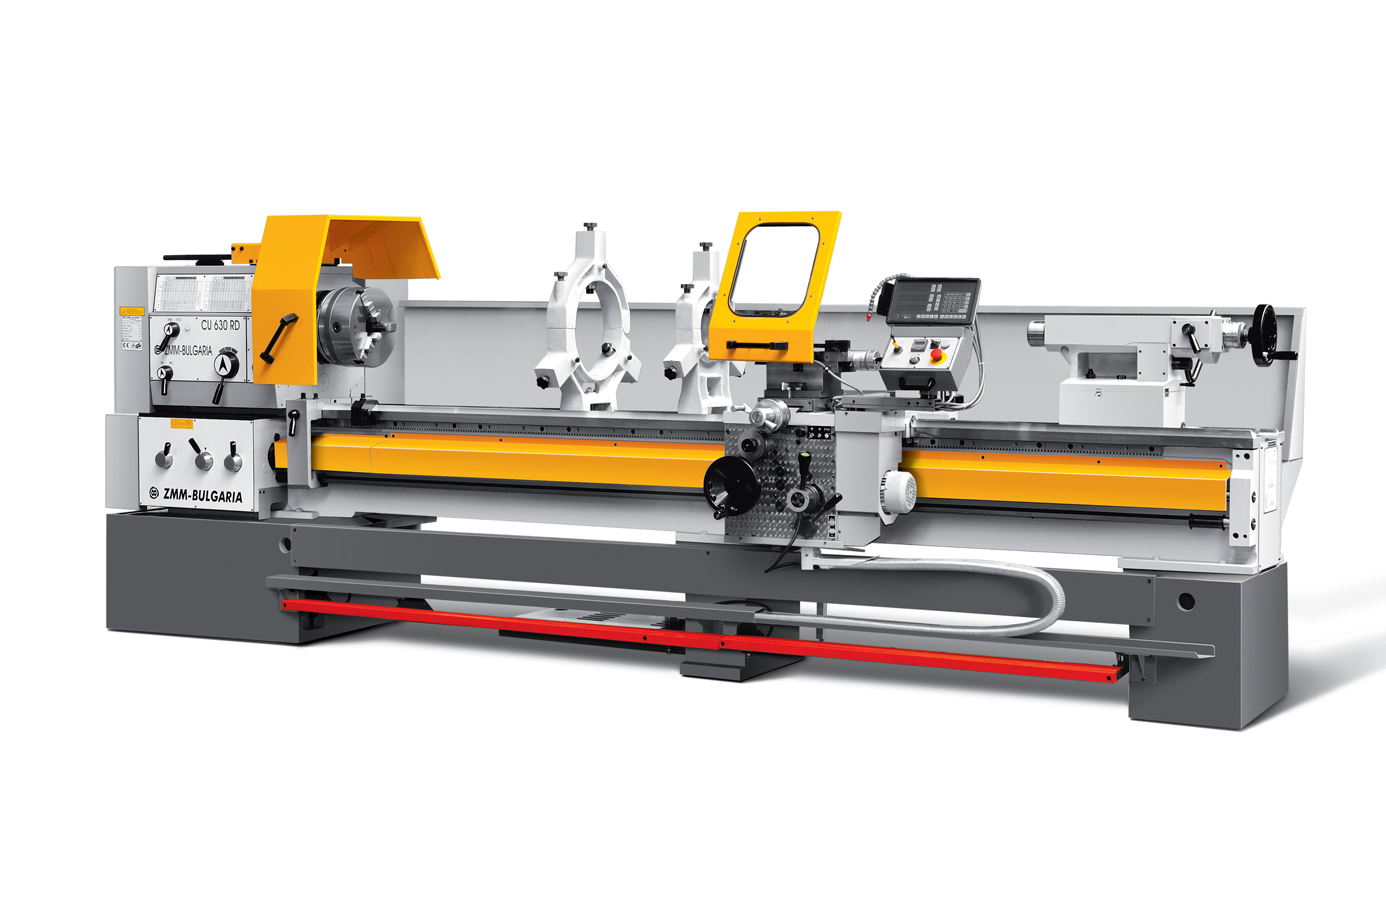 LATHES WITH VARIABLE SPEED CONTROL